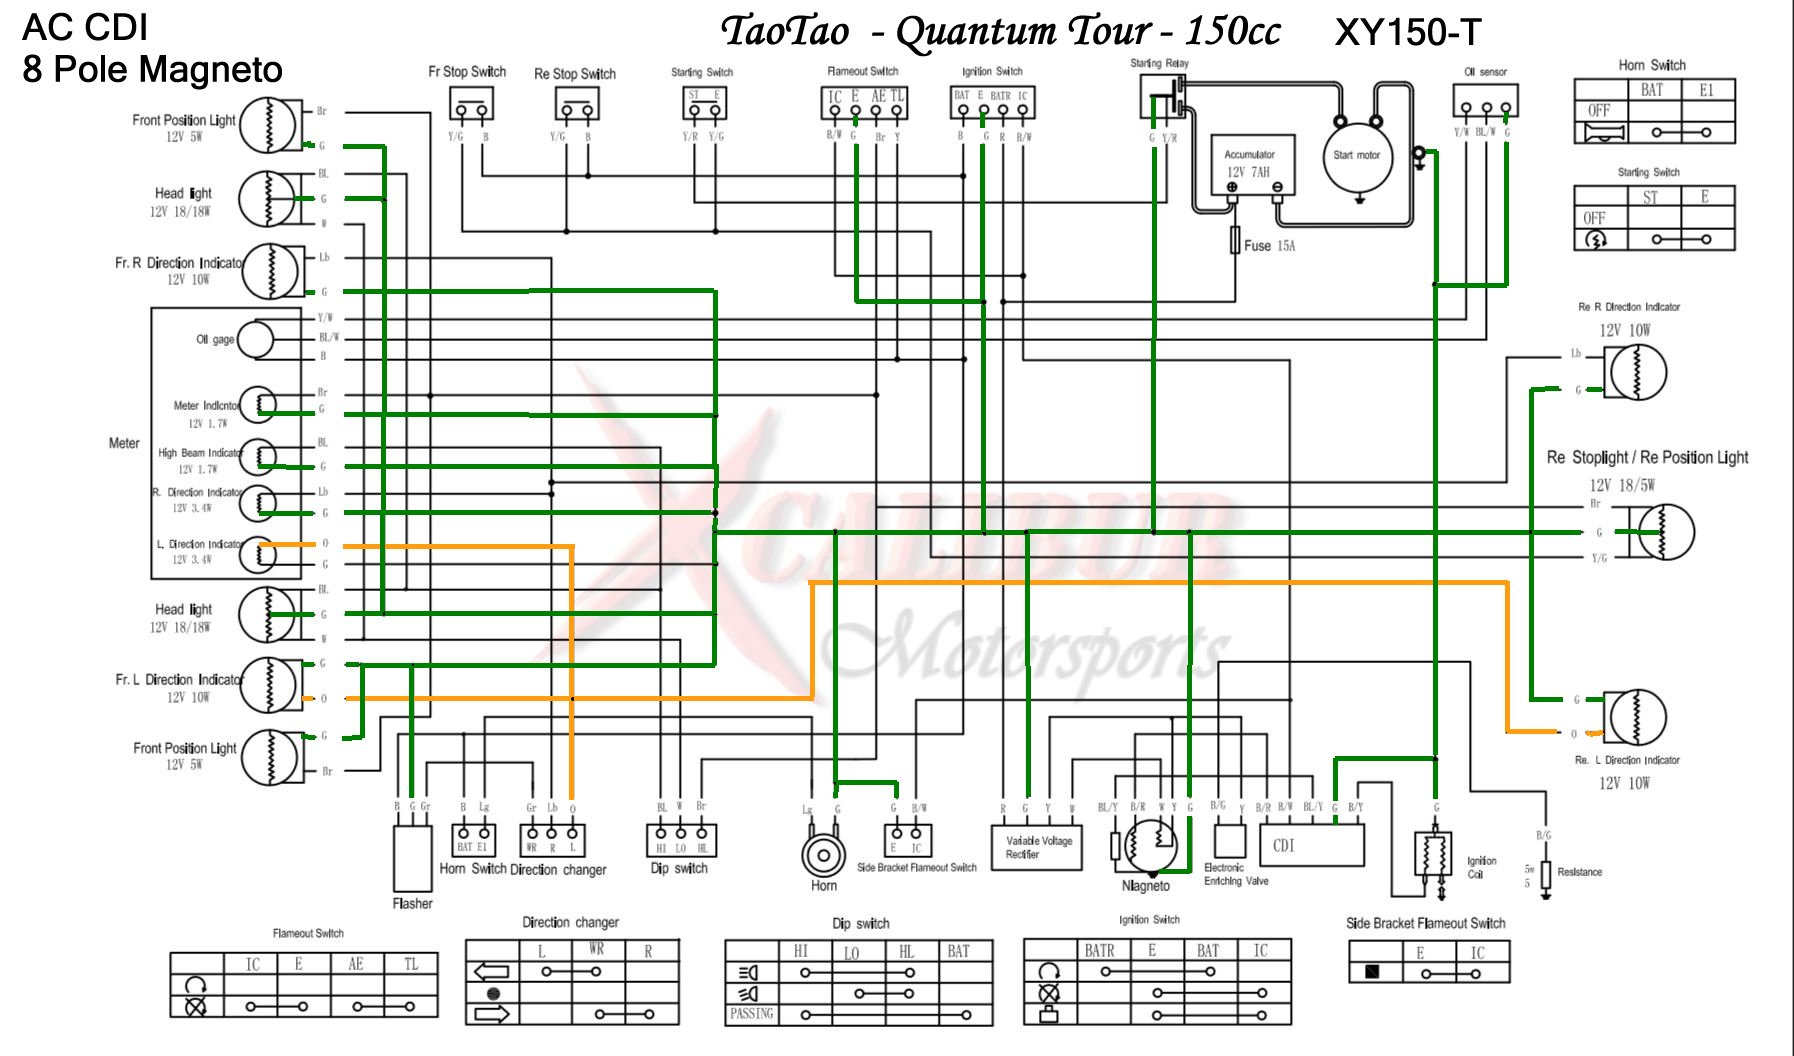 Wiring Diagram For 150Cc Gy6 Scooter - Data Wiring Diagram Today - Gy6 Wiring Diagram